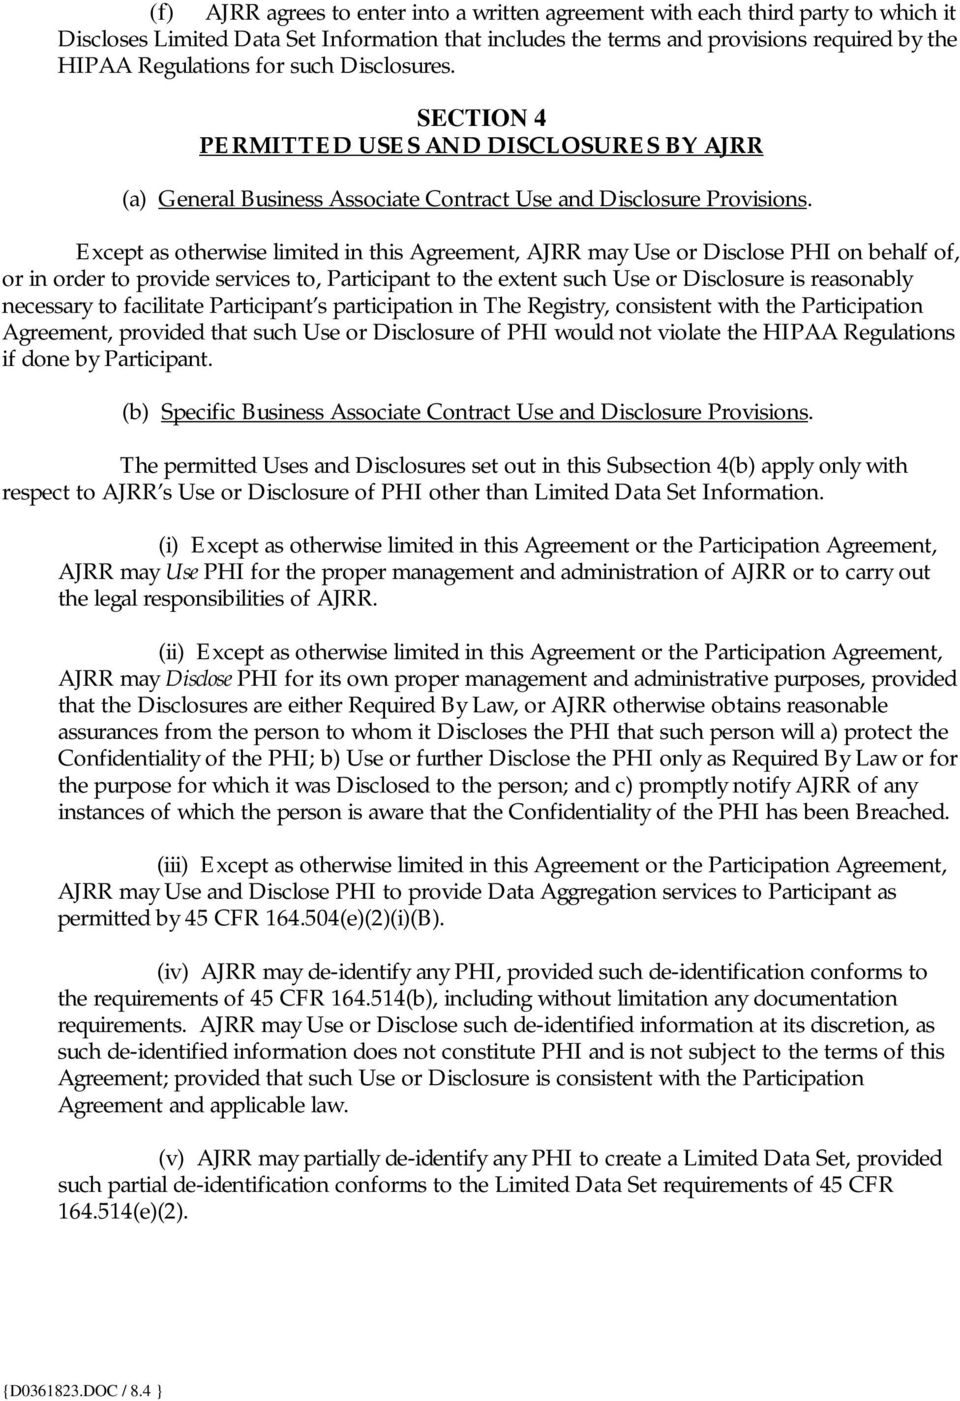 Except as otherwise limited in this Agreement, AJRR may Use or Disclose PHI on behalf of, or in order to provide services to, Participant to the extent such Use or Disclosure is reasonably necessary